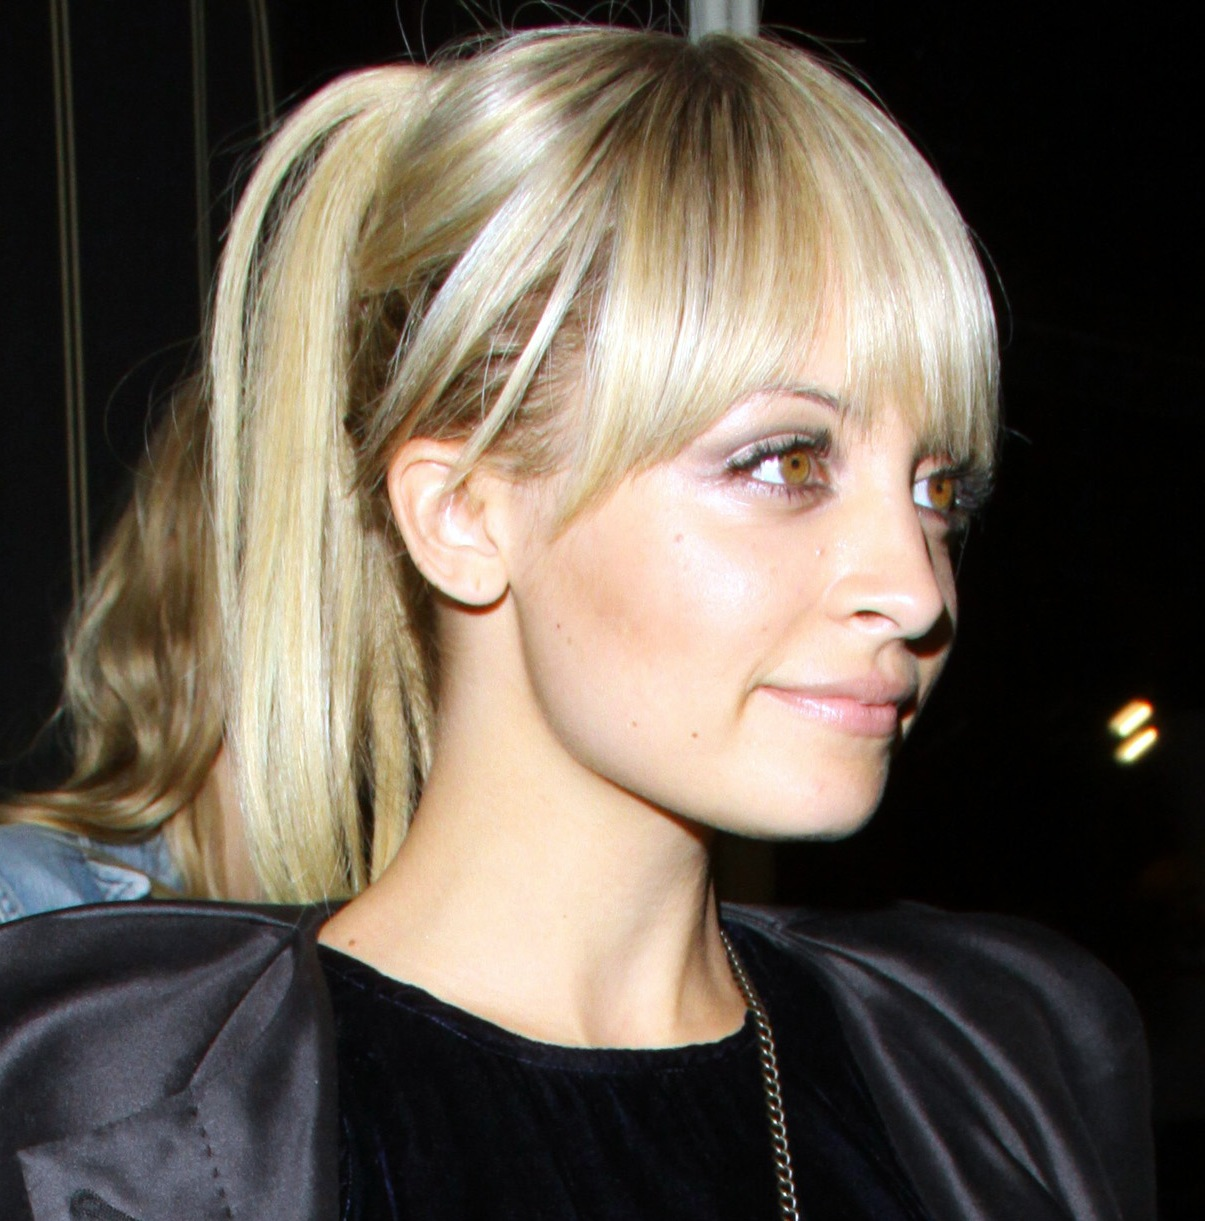 Modern Day Style icon- Nicole Richie | lovechrystal Nicole Richie